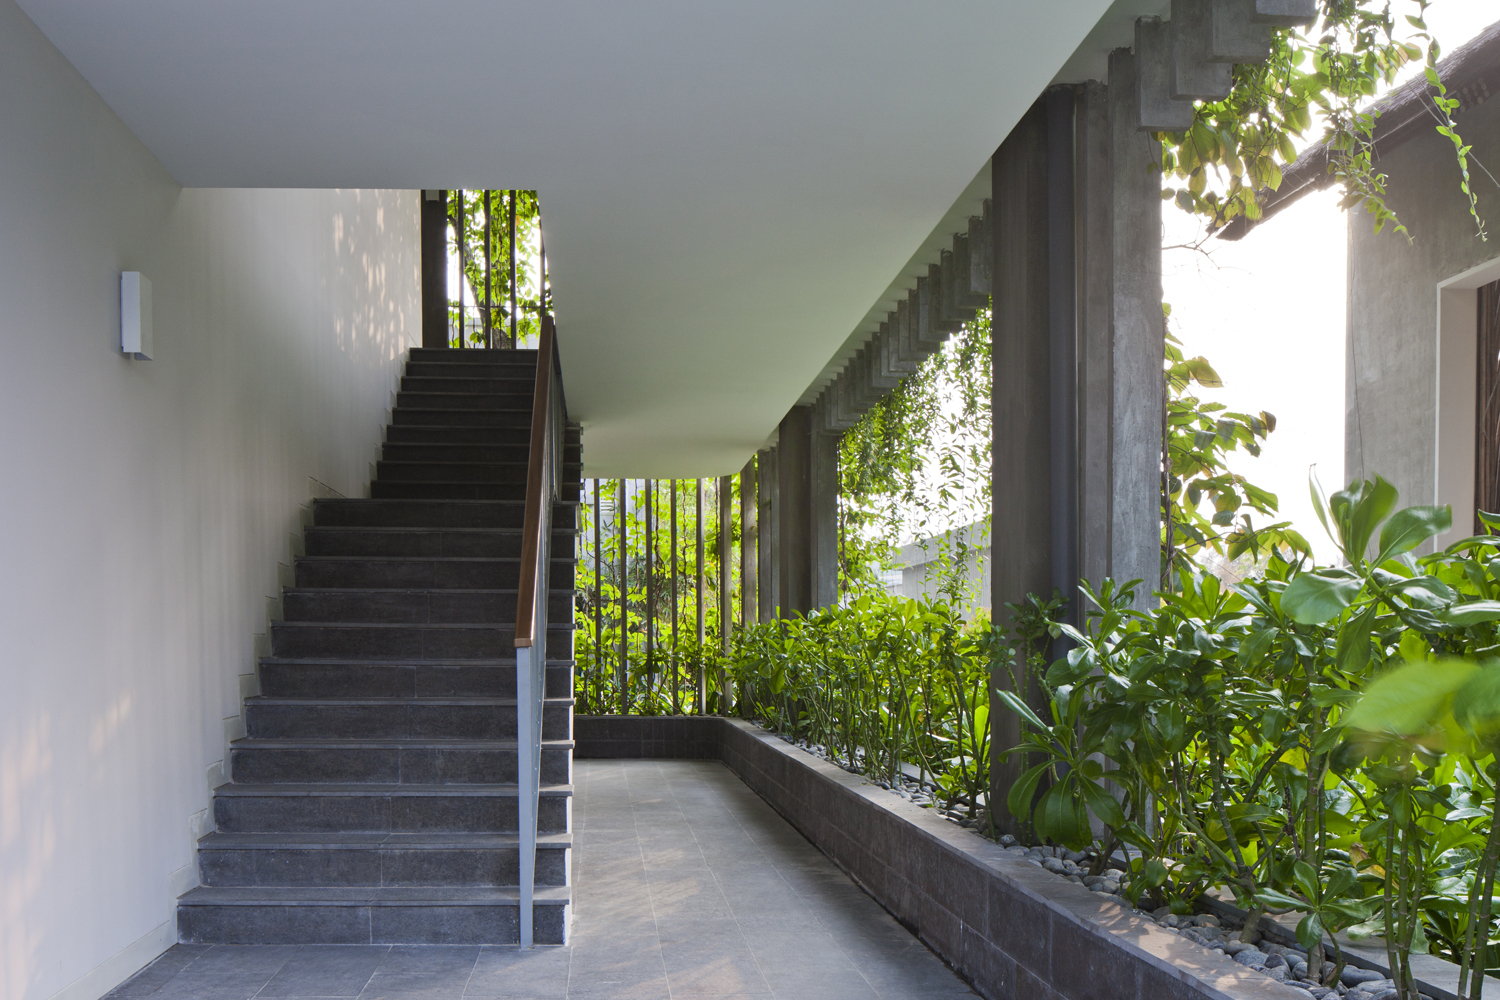 08_staircase